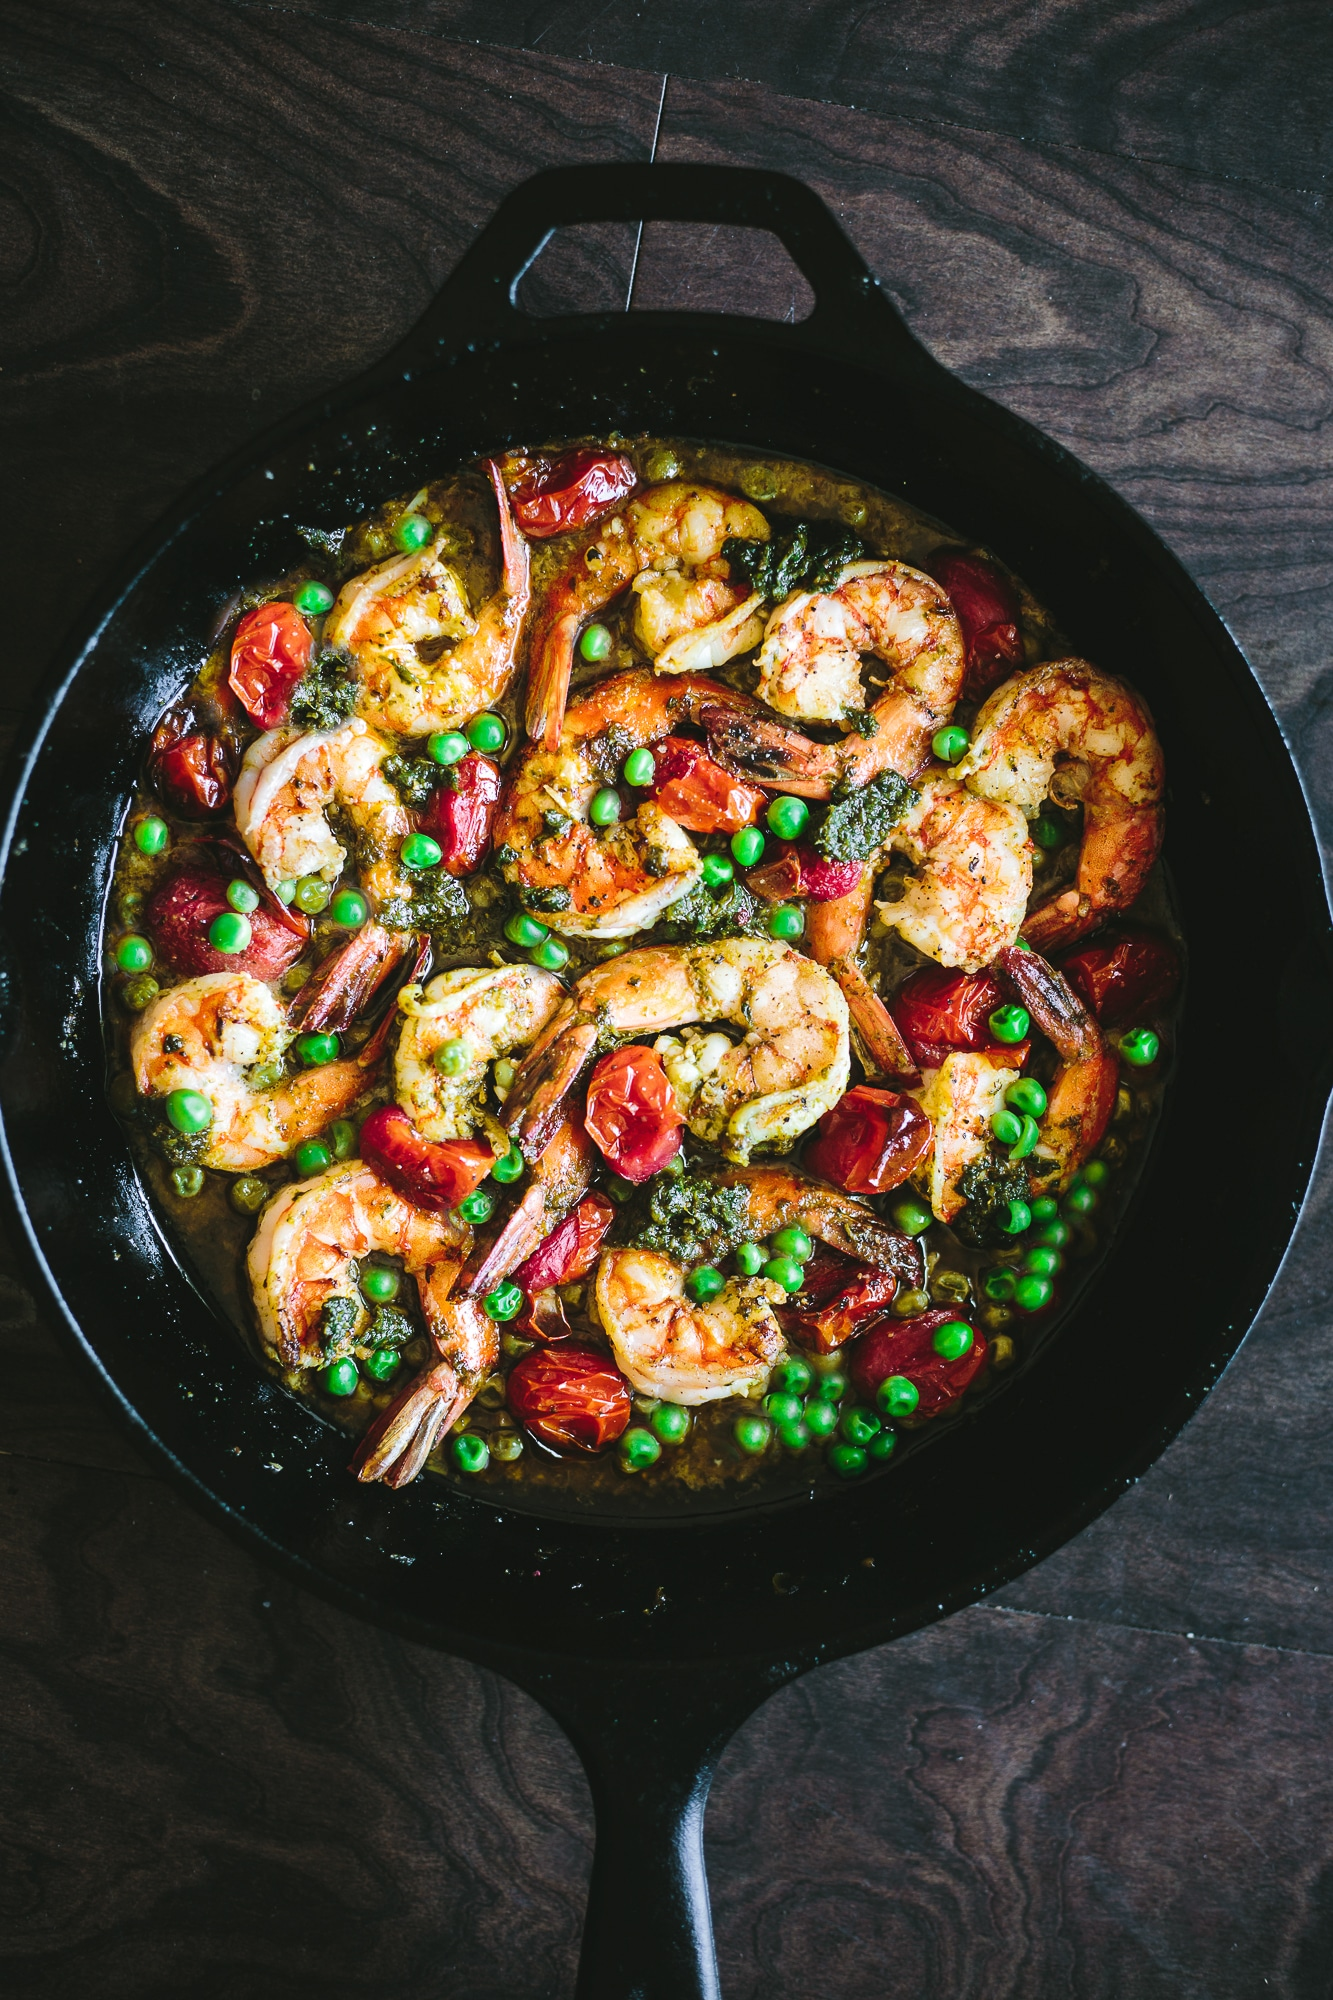 harissa grits and shrimp beyond the bayou